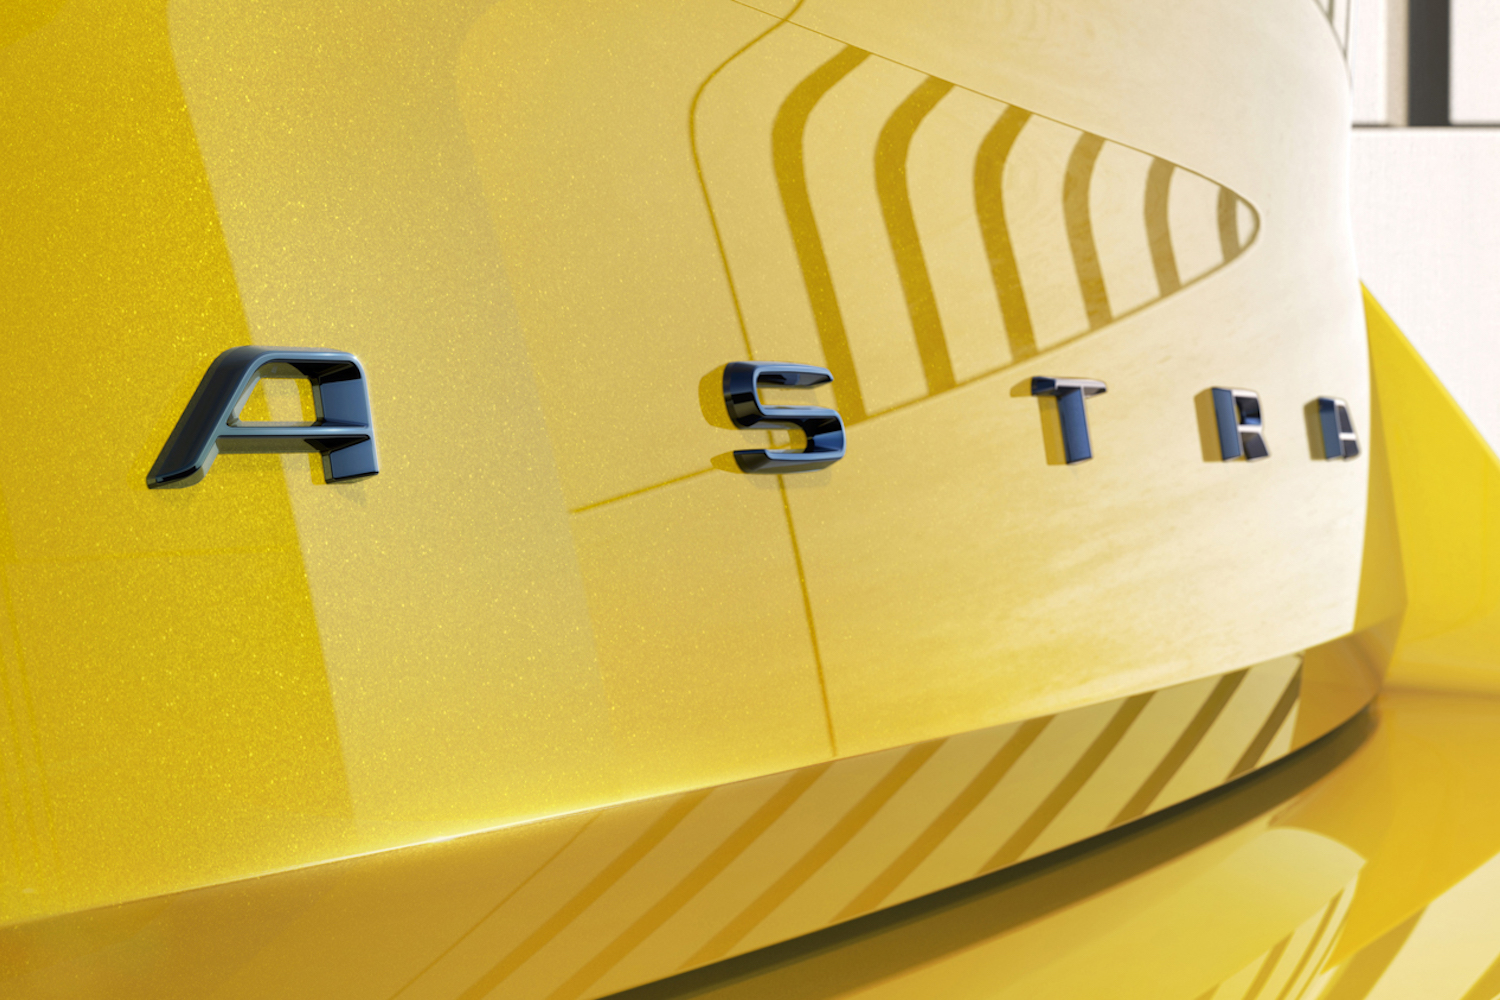 Car News | Opel teases first images of new Astra | CompleteCar.ie